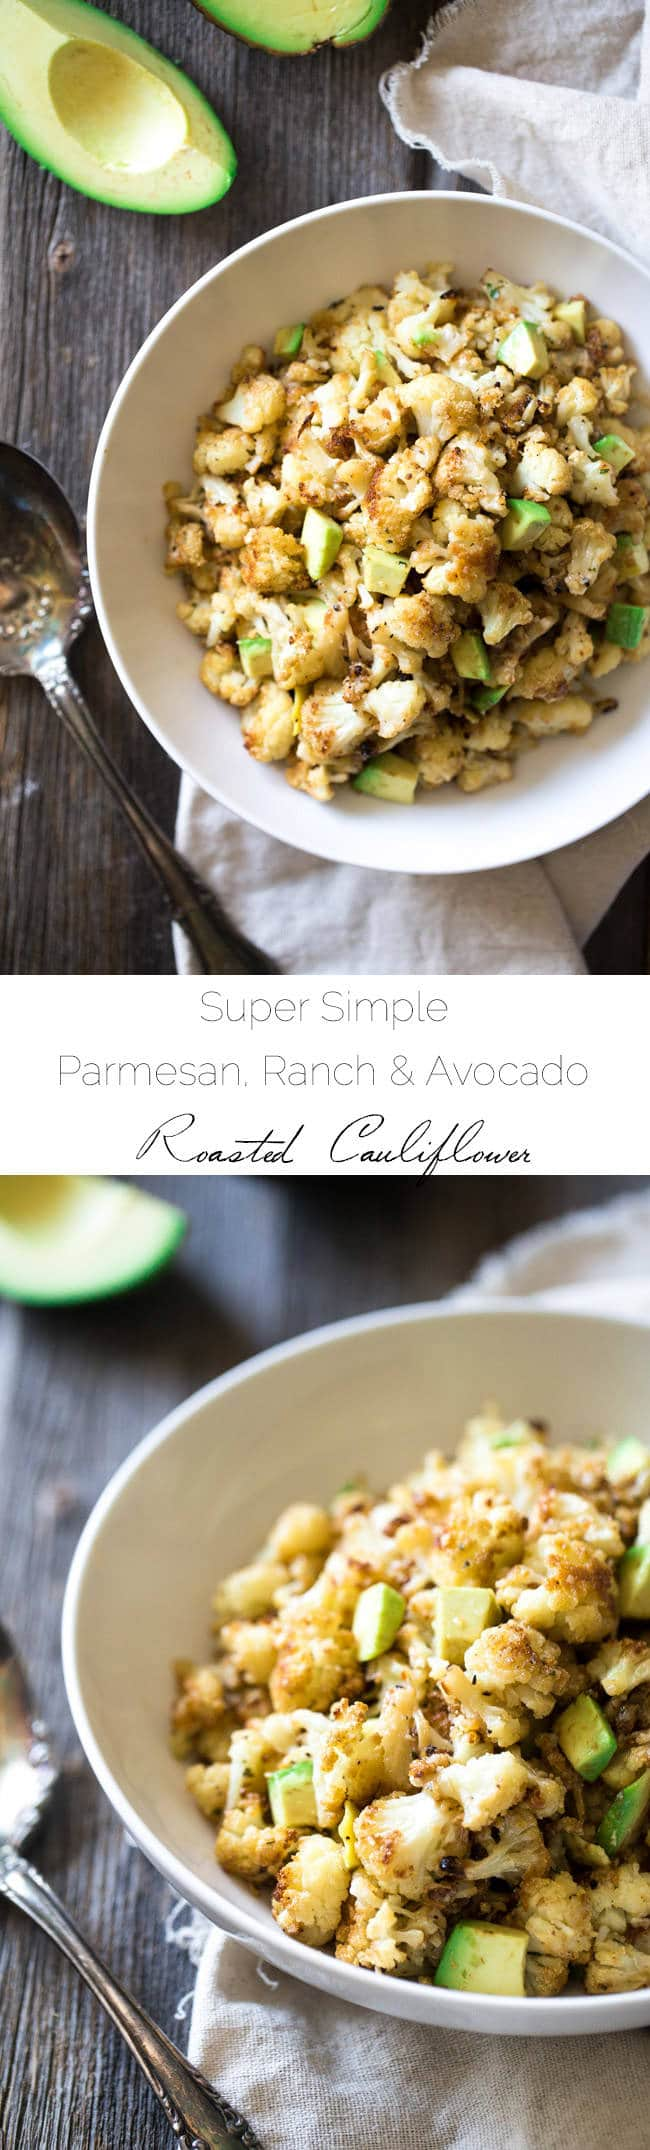 Ranch Roasted Cauliflower with Parmesan and Avocado - A great way to get kids to eat veggies! Healthy, easy, 5 ingredients and ready in 30 mins! | Foodfaithfitness.com | @FoodFaithFit